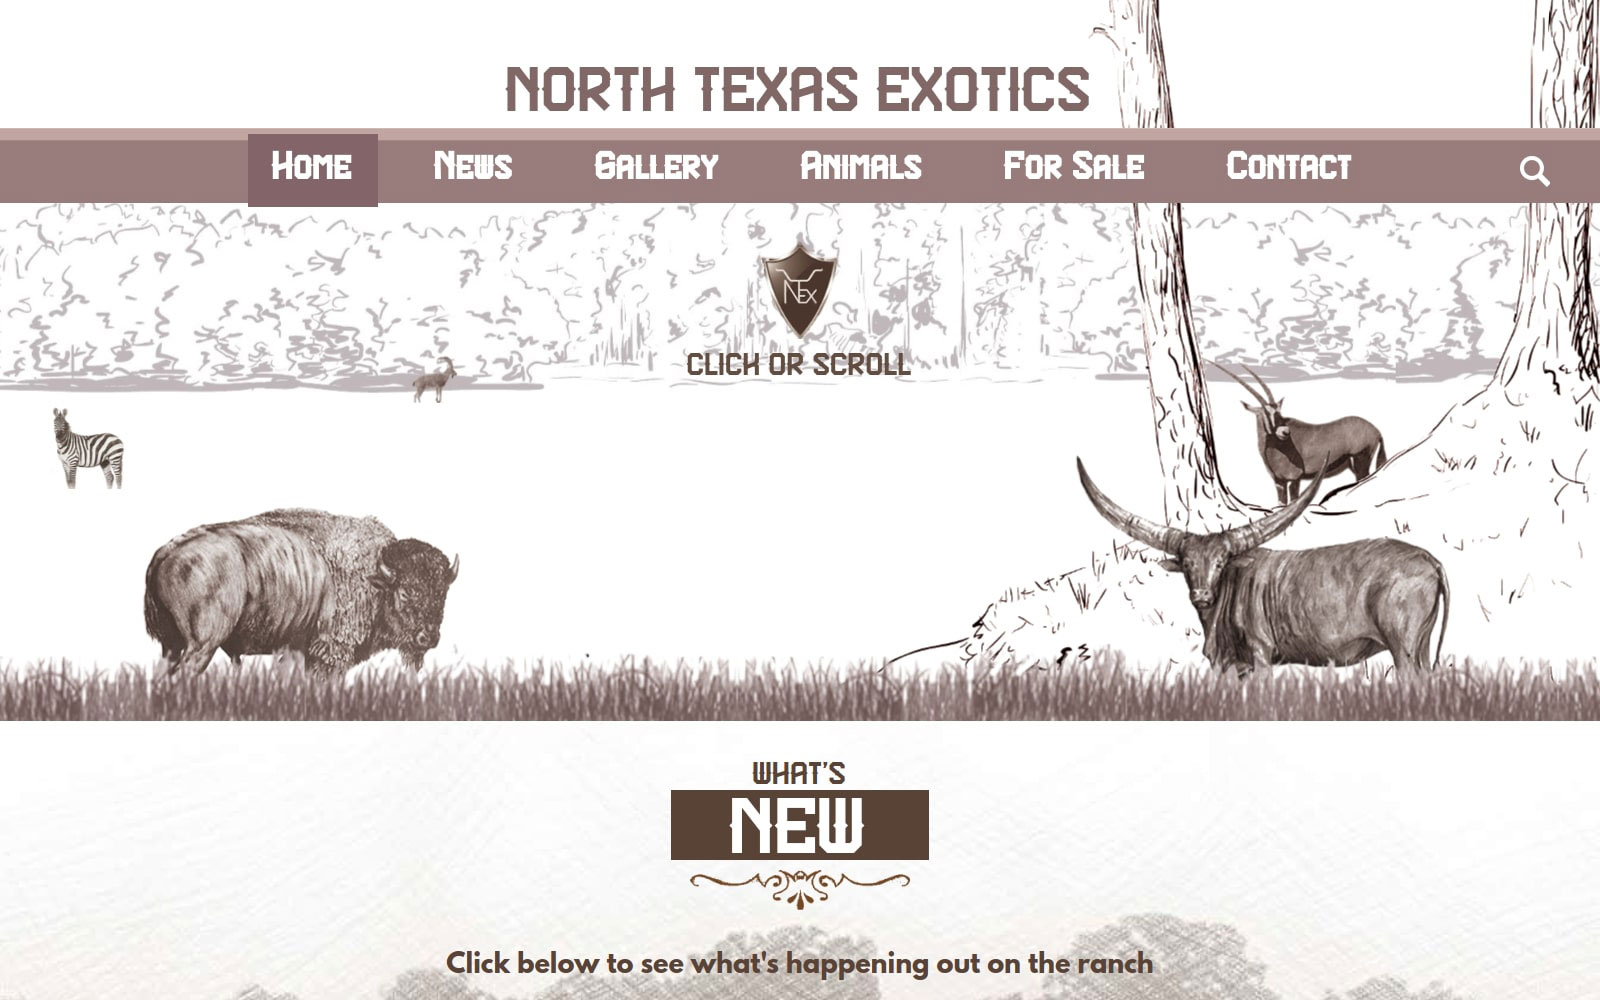 web-design-and-development-example-project-north-texas-exotics-cropped